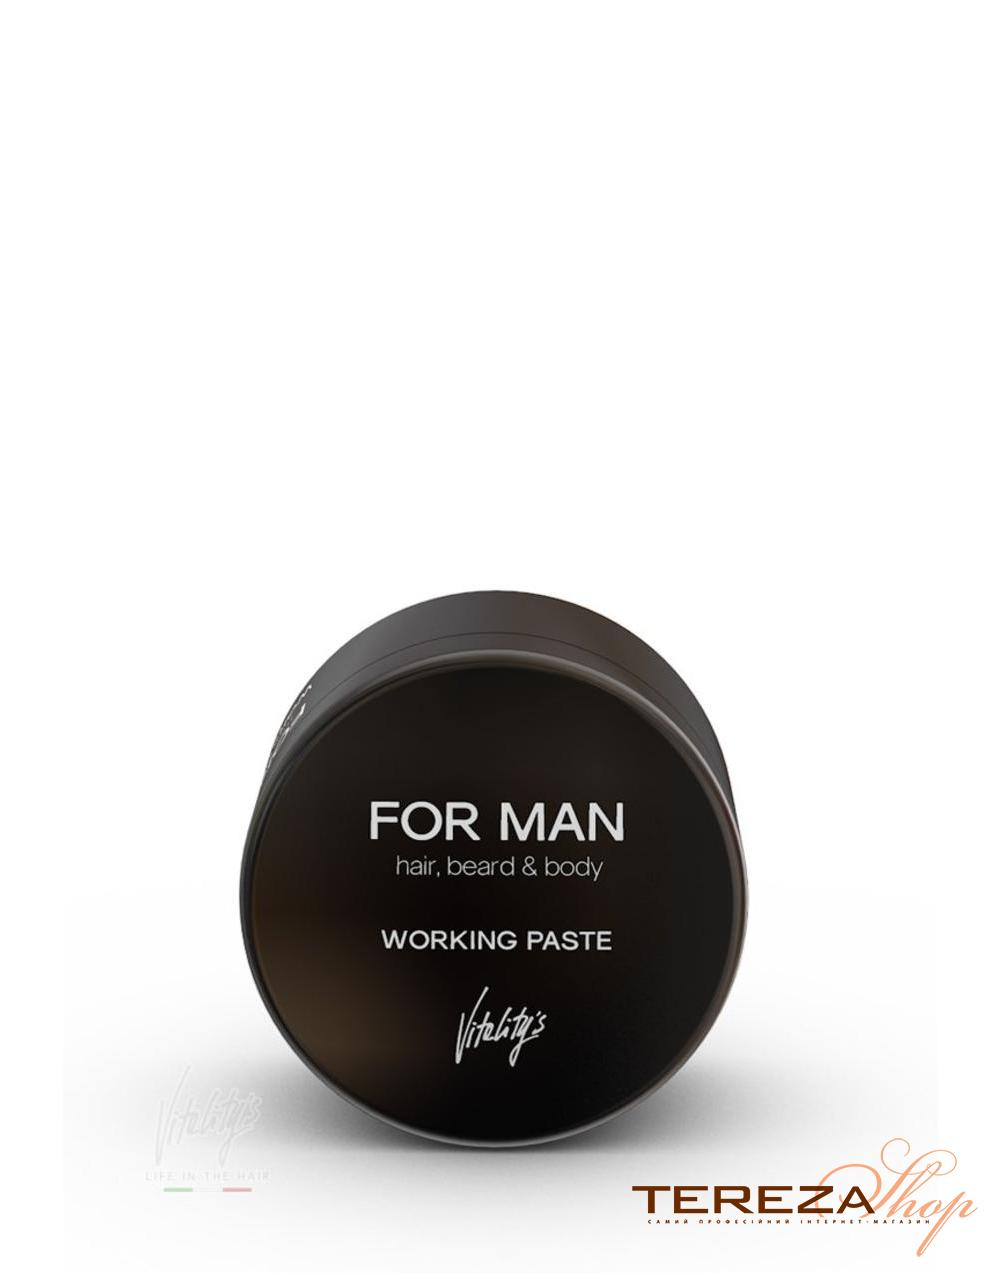 FOR MAN WORKING PASTE VITALITY'S | Tereza Shop